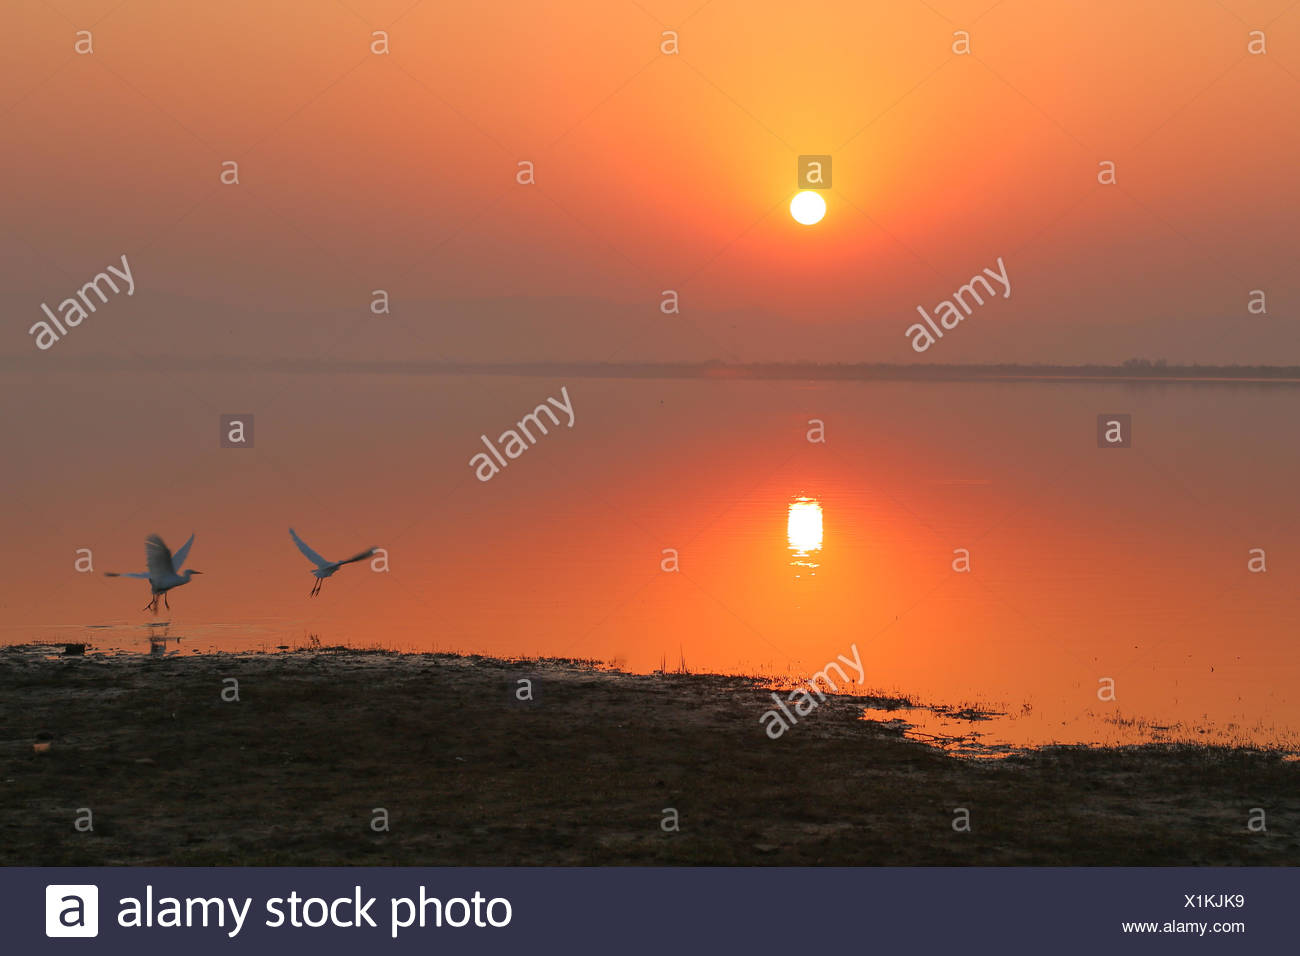 Birds taking off at sunset - Stock Image